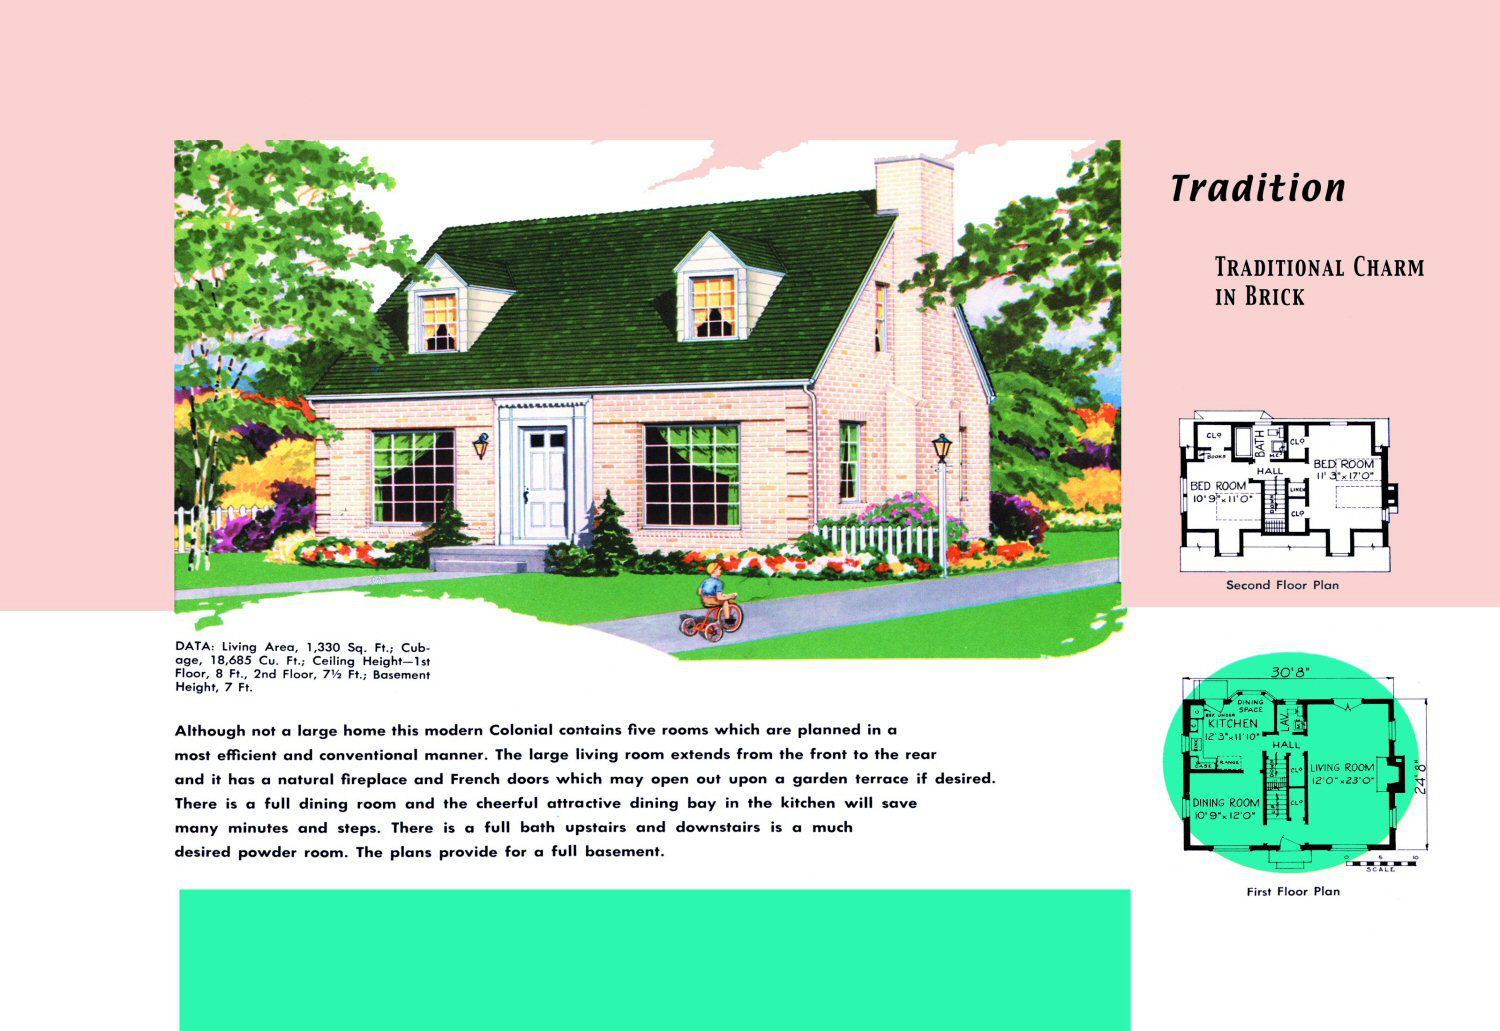 Cape Cod House Plans 1950s America Style Attic Room 2 Wiring Diagram